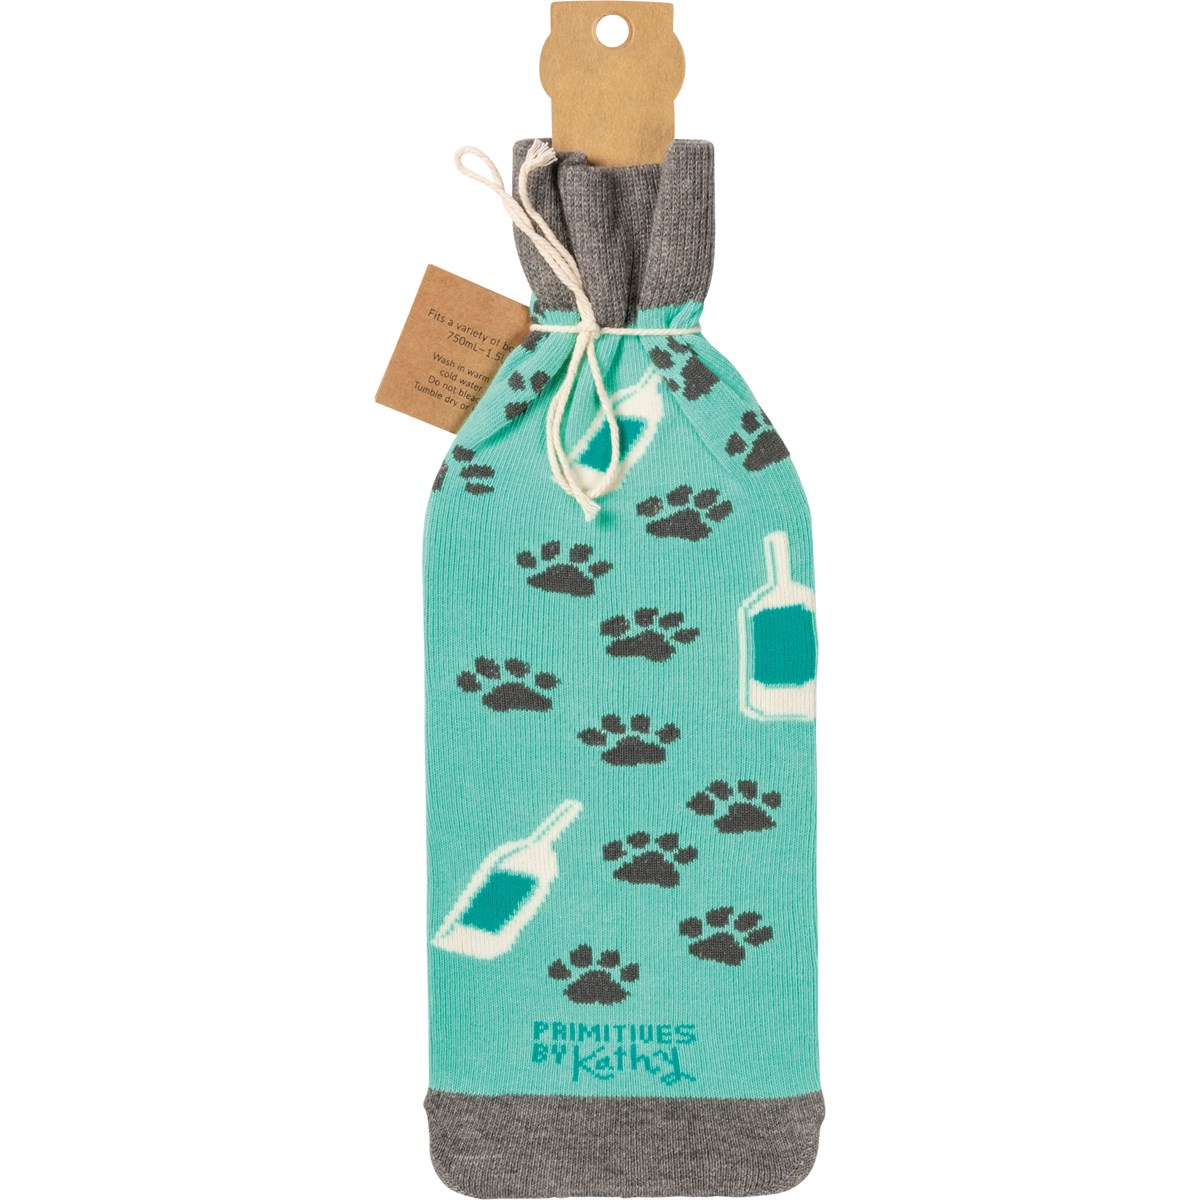 "Bottle Sock - Cats & Wine - 3.50"" x 11.25"", Fits 750mL to 1.5L bottles - Cotton, Nylon, Spandex"